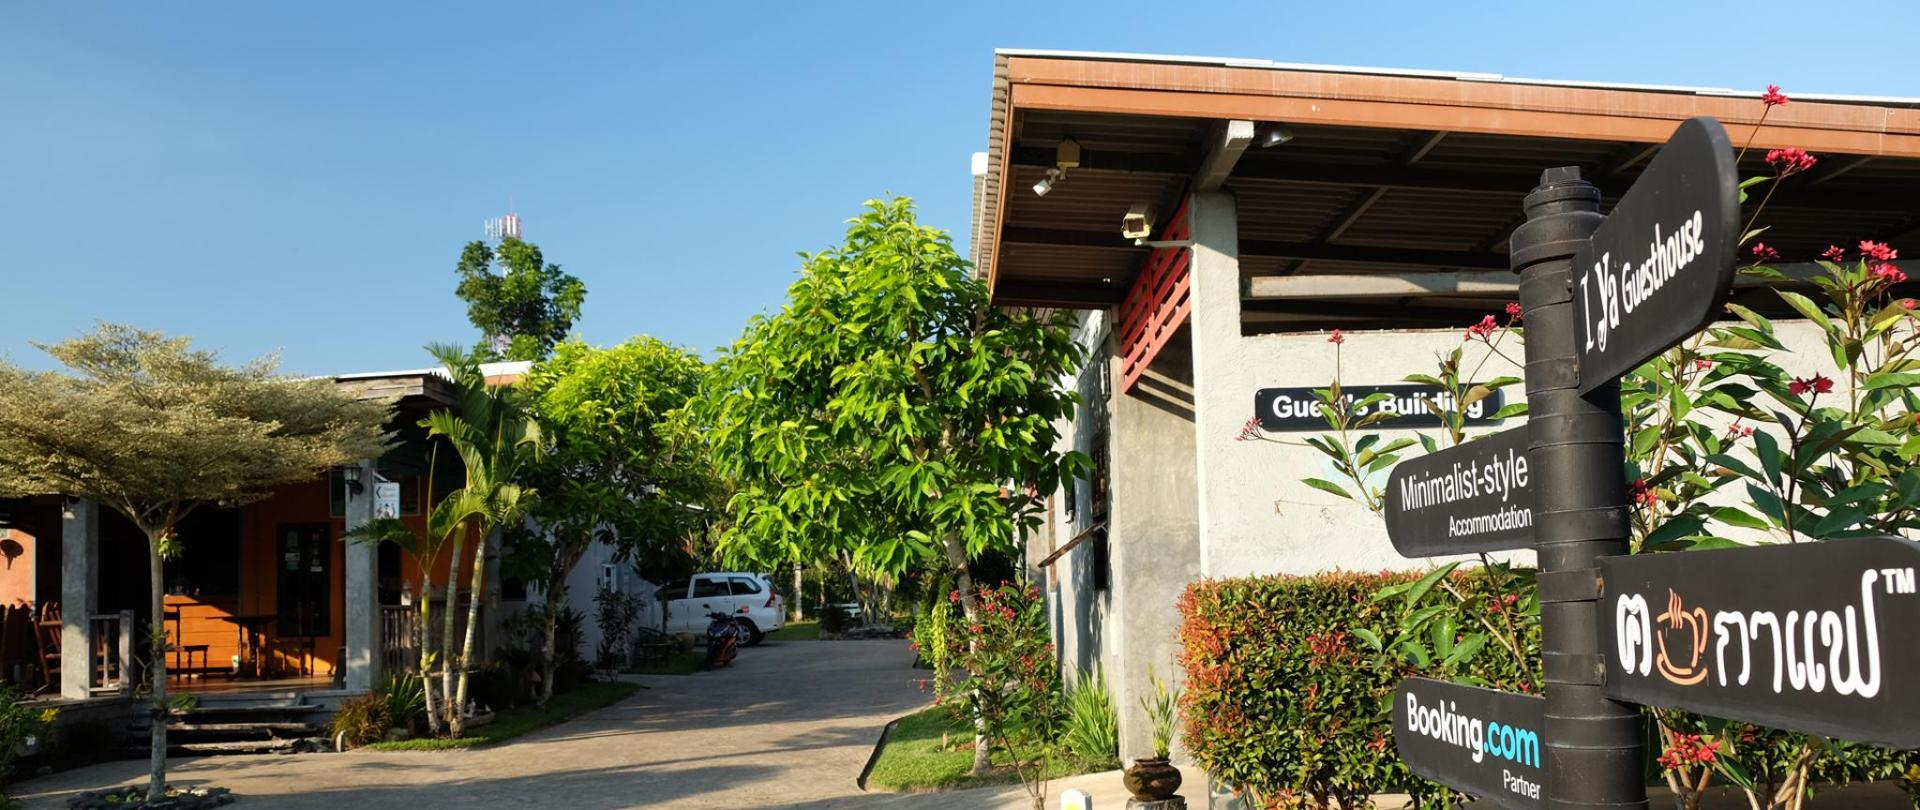 Logo-guest-building-places-to-eat-coffee-shop-garden-CCTV-in-common areas-I-Ya-Guesthouse-Phayao.jpg